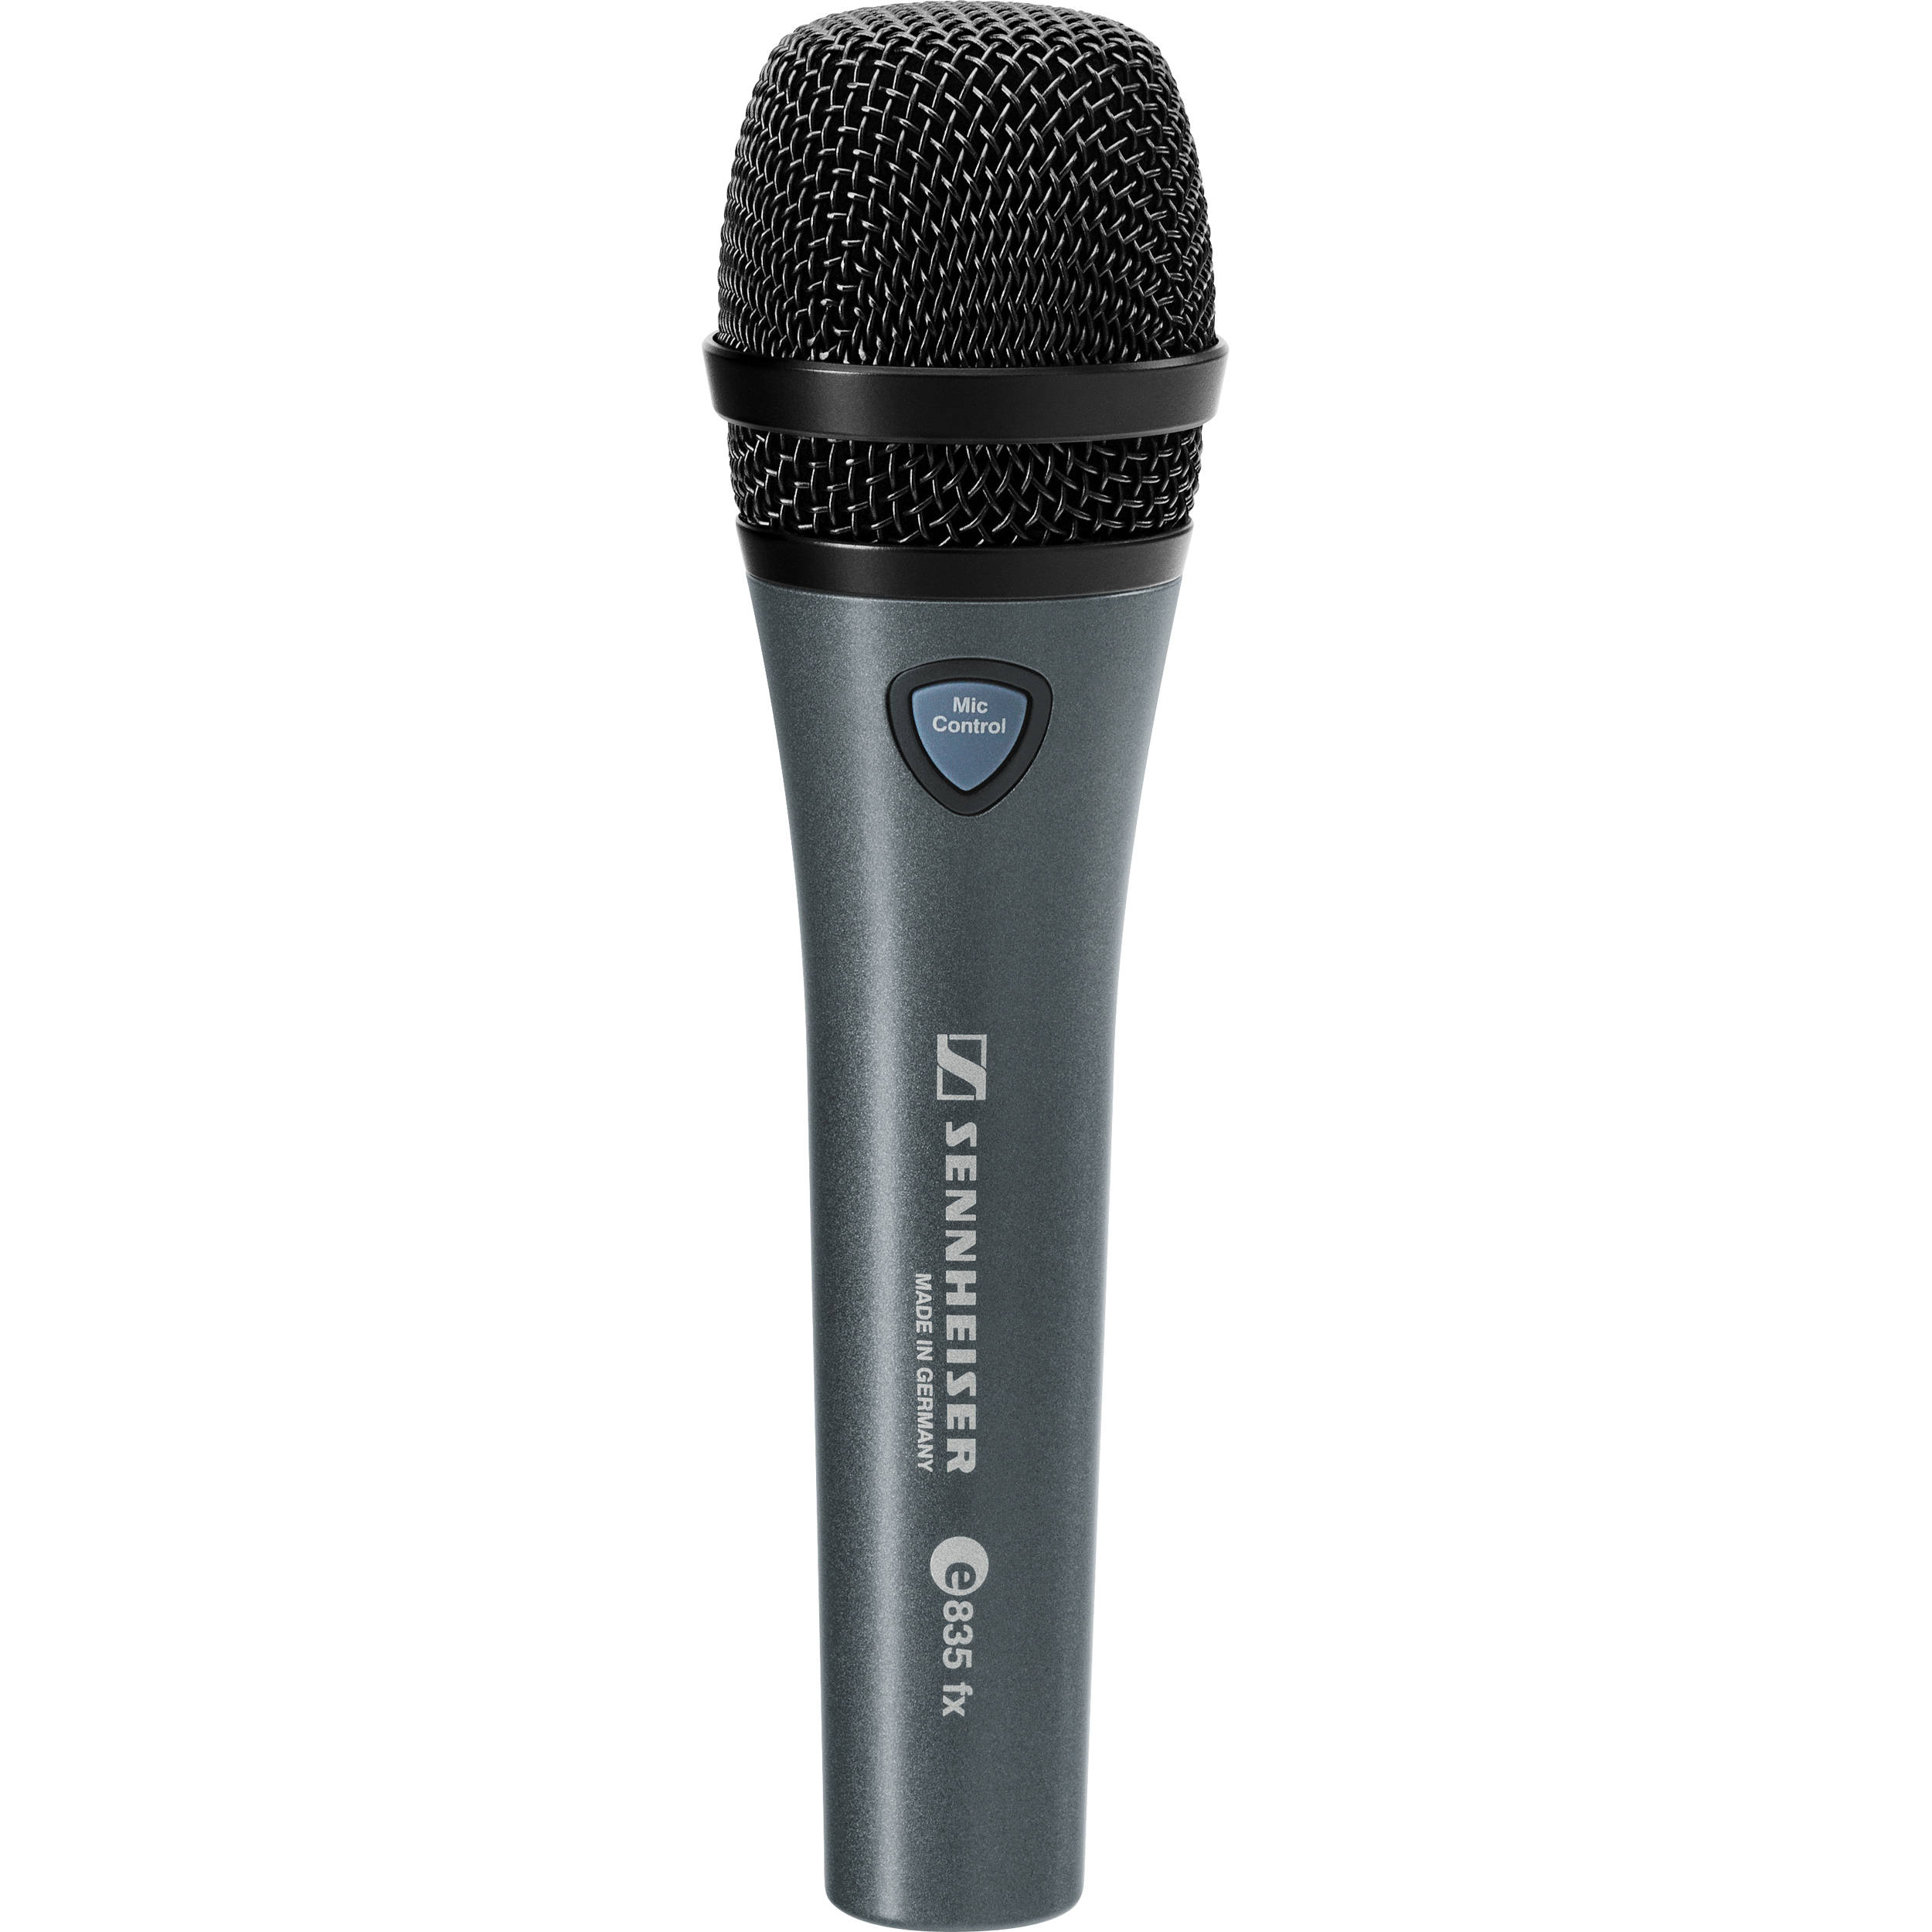 sennheiser evolution e 835 fx dynamic vocal microphone e835fx. Black Bedroom Furniture Sets. Home Design Ideas